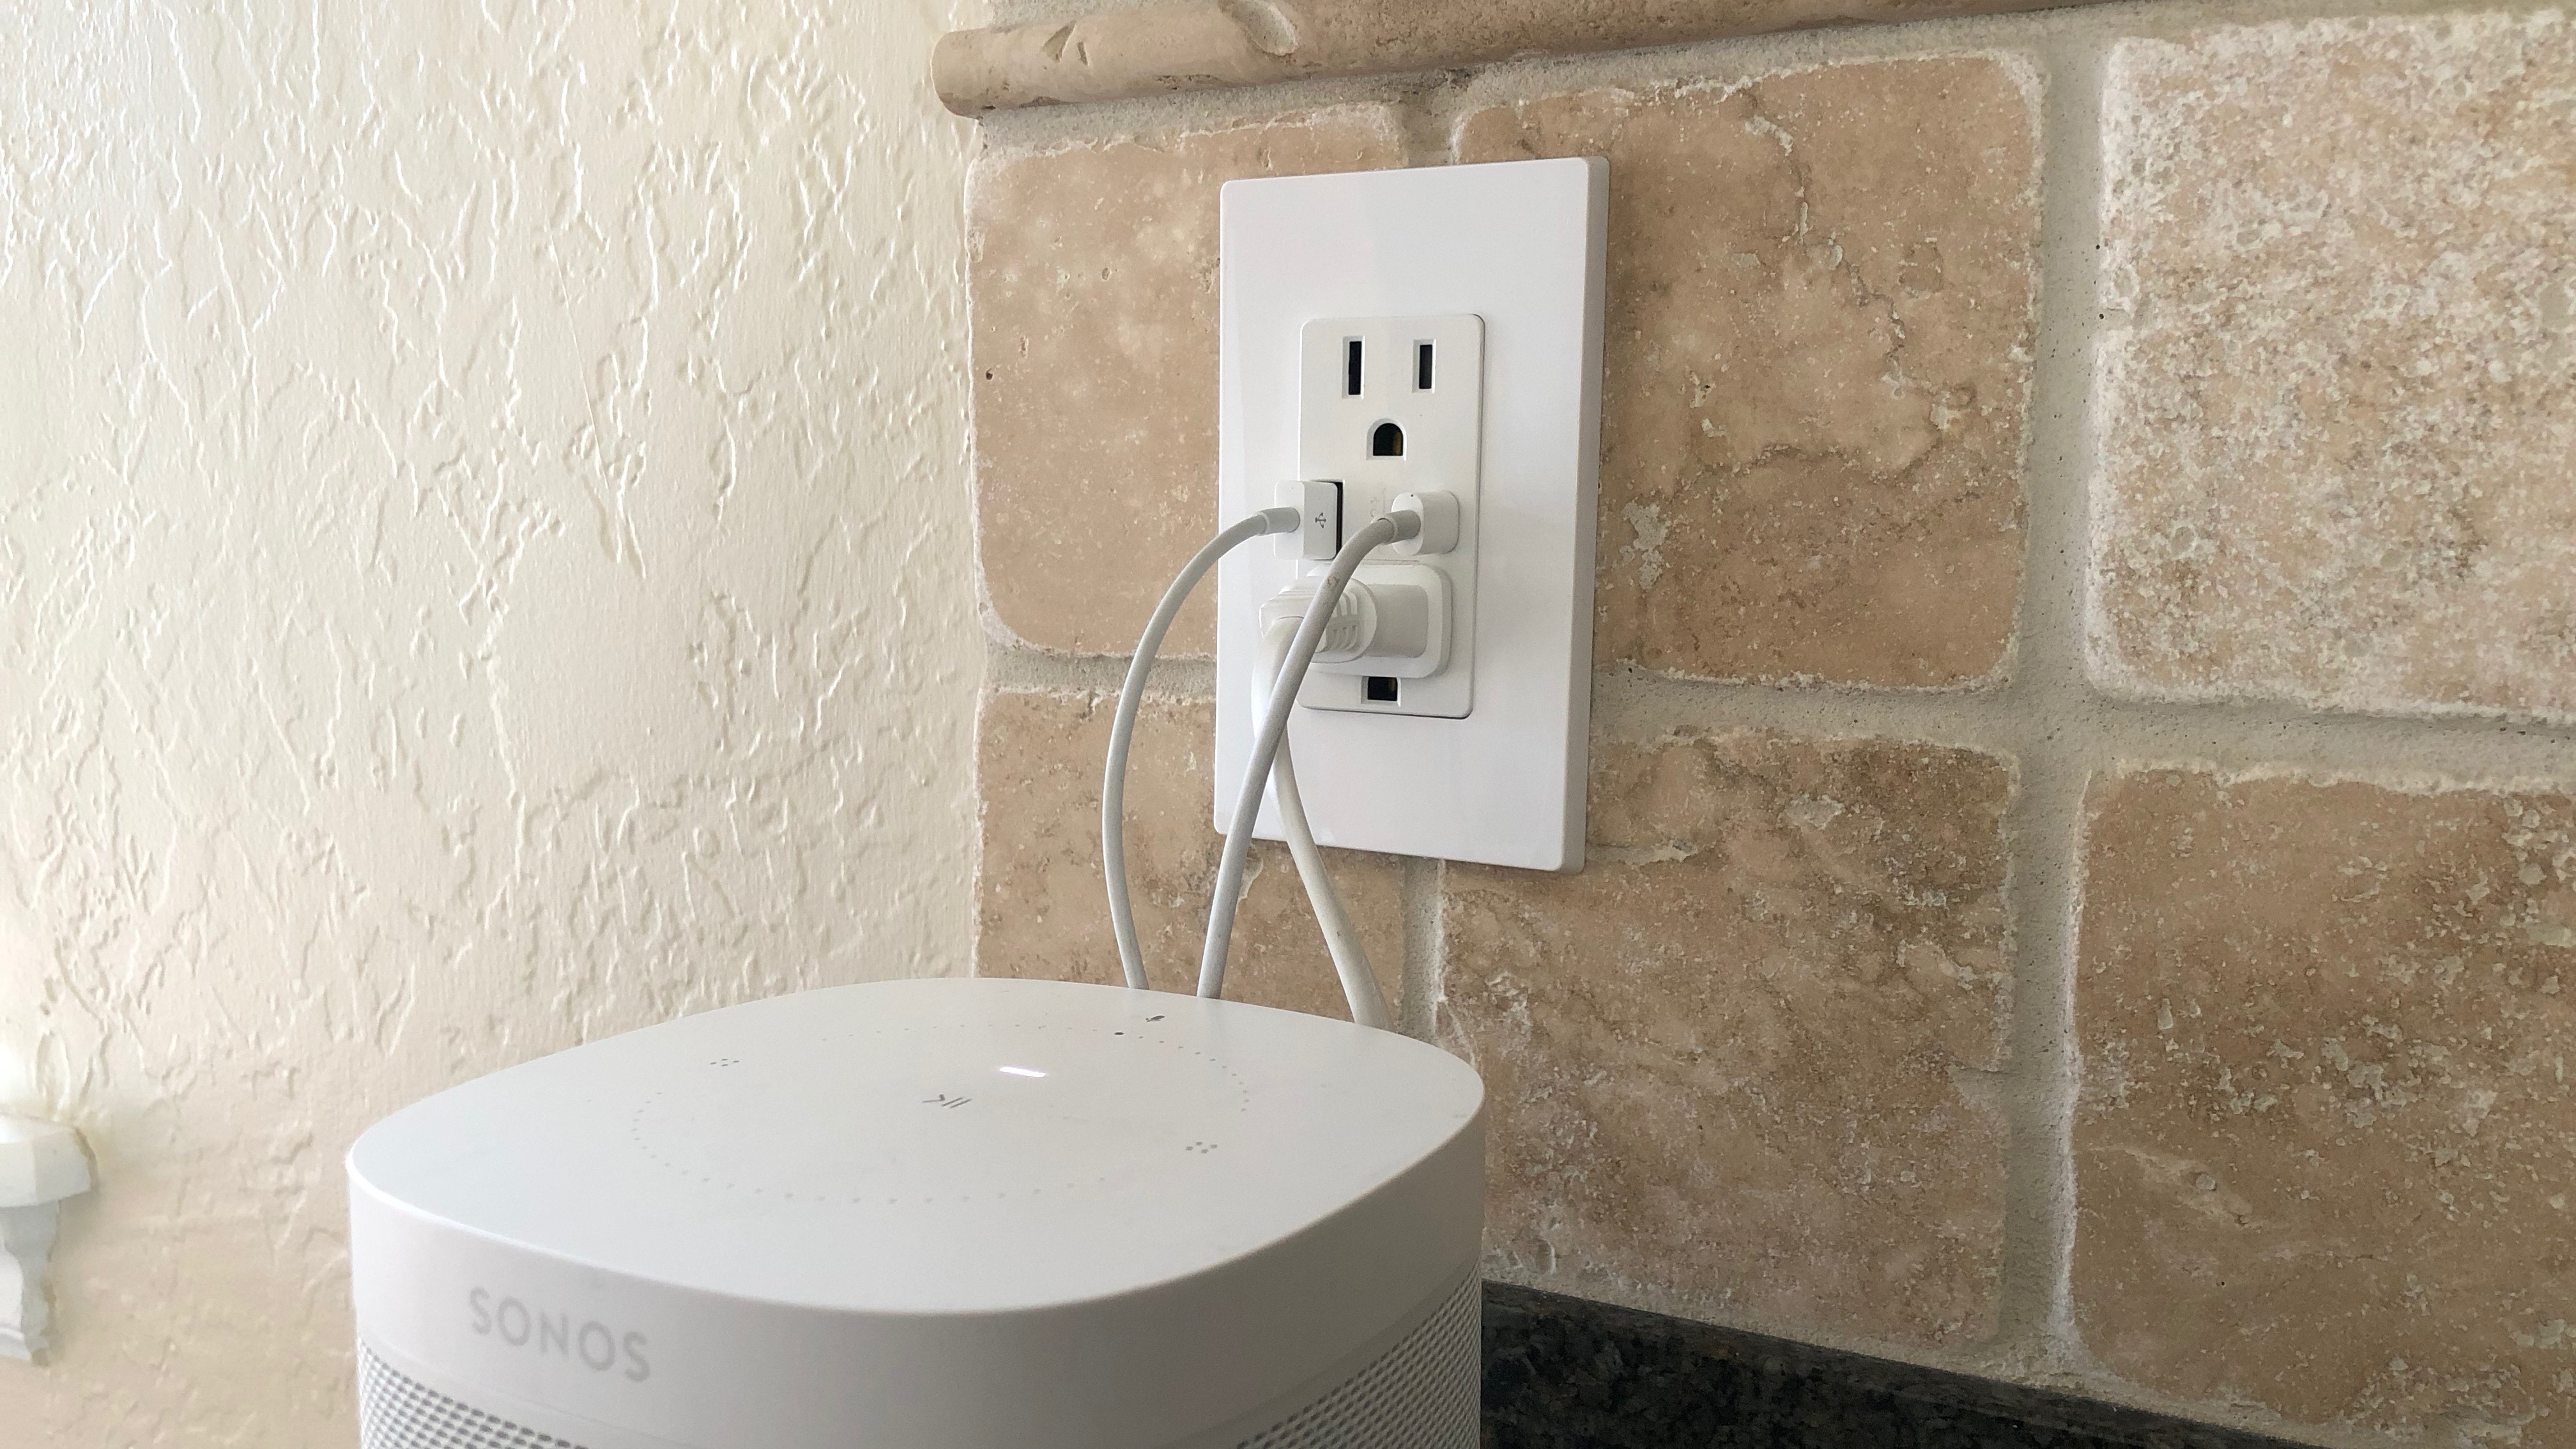 review leviton s usb c usb a wall outlet offers lots of charging convenience